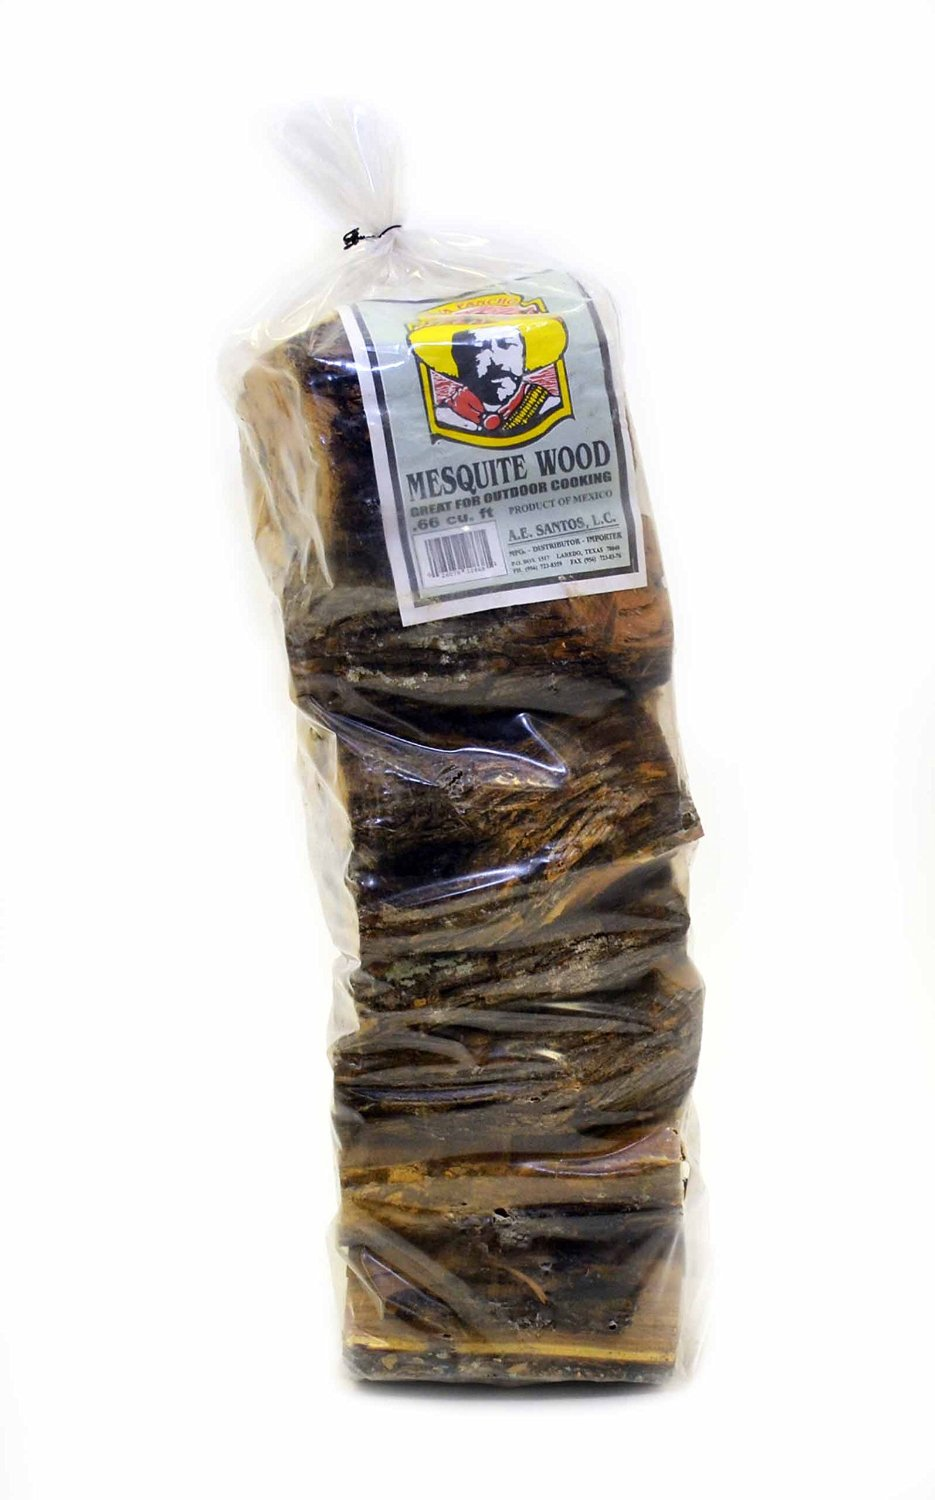 0.66 CUBIC FOOT BAG OF NATURAL 100% MESQUITE WOOD FOR GRILLING. 7 INCH LONG LOGS